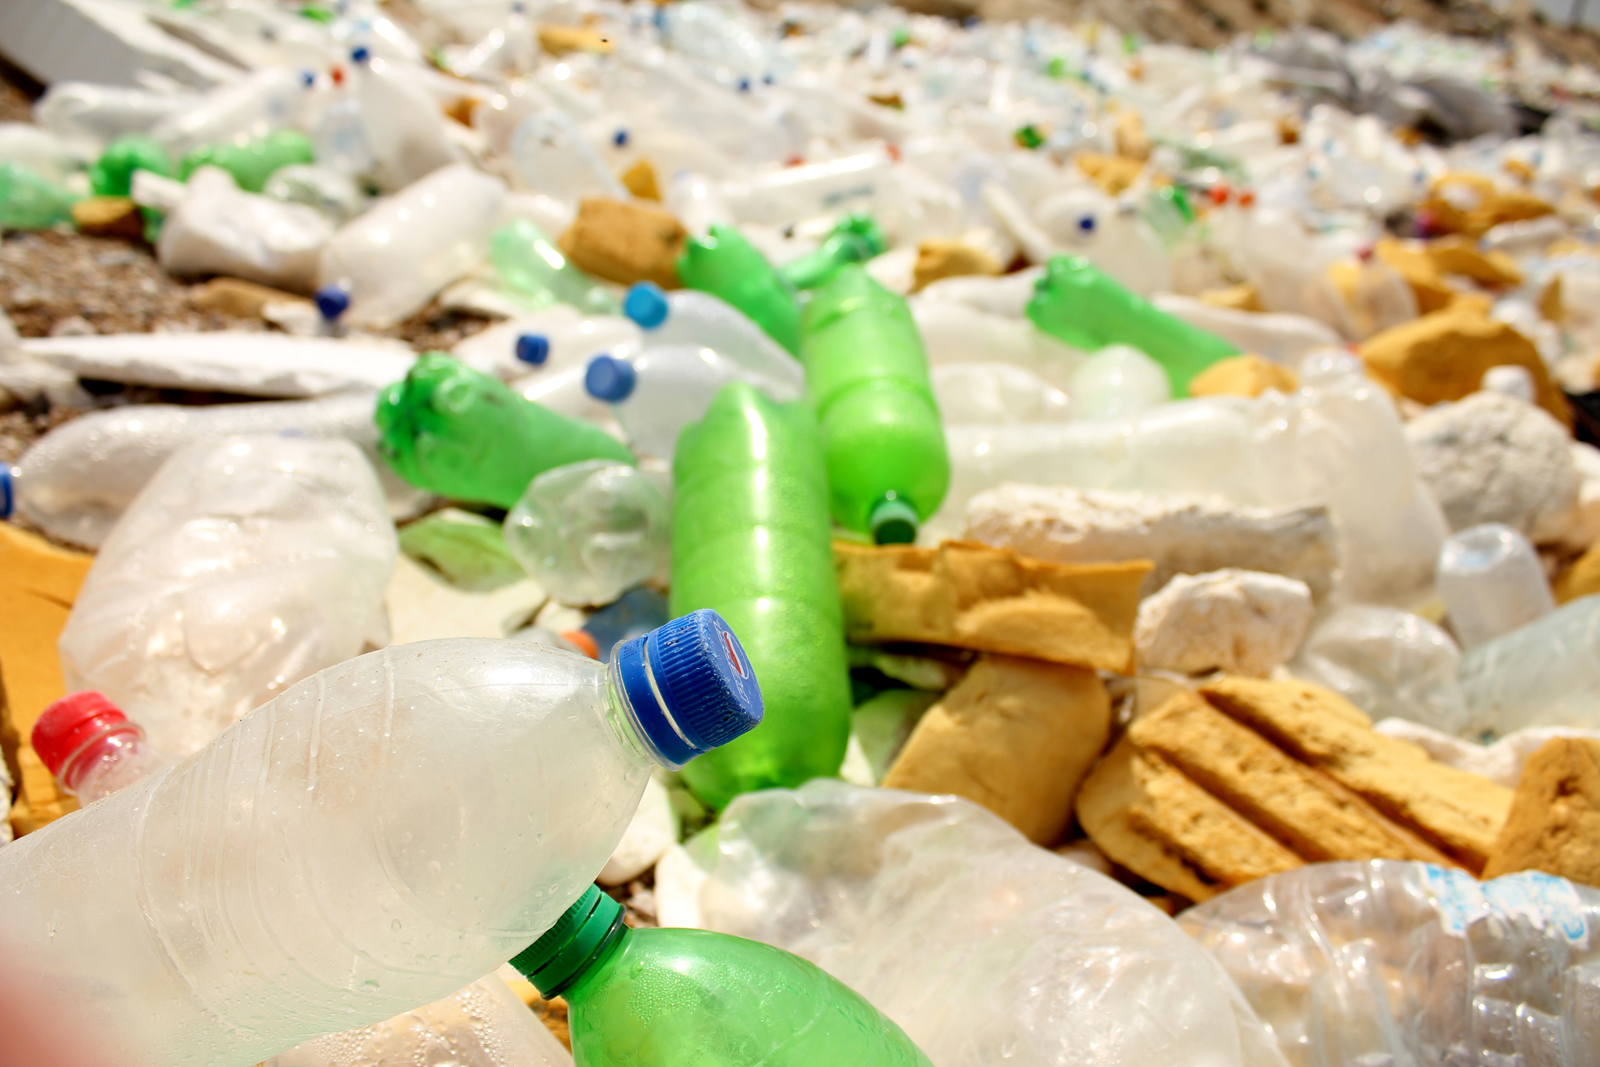 Waste-Plastic-Bottles